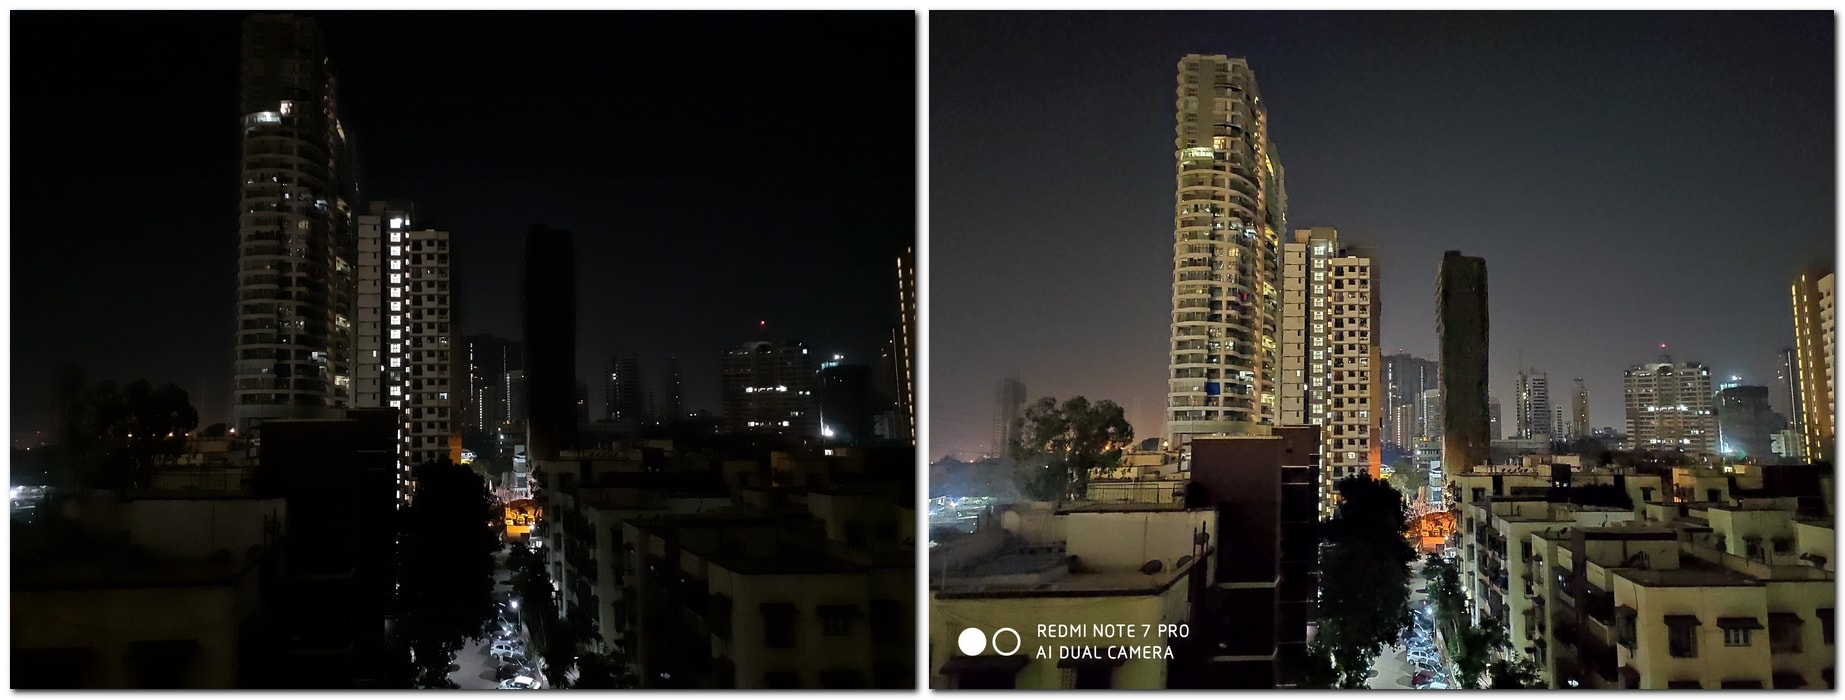 Low-light shot comparison: (L-R) Galaxy M30, Redmi Note 7 Pro (night mode)